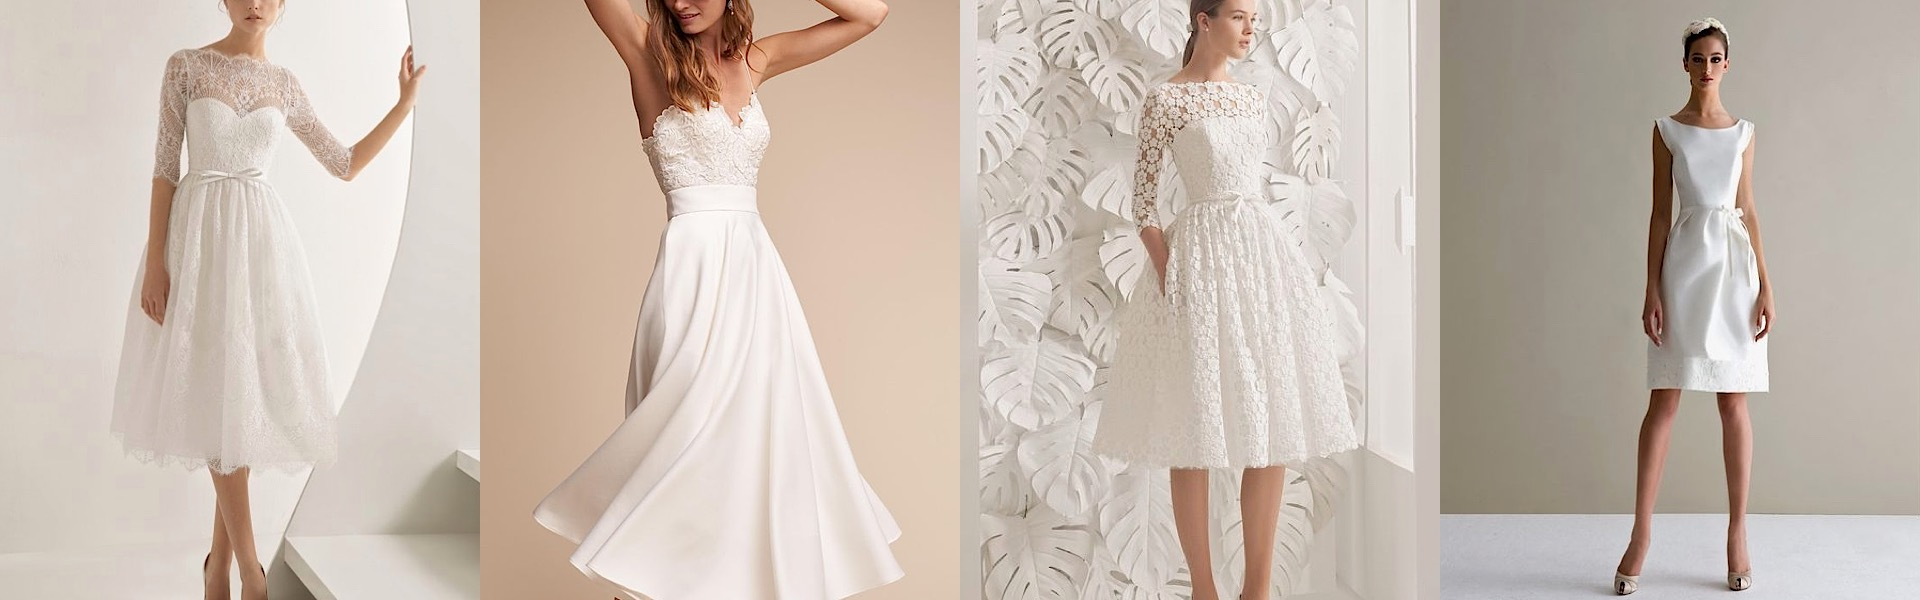 Modern Chic Short Wedding Dresses That Are Stealing The Show